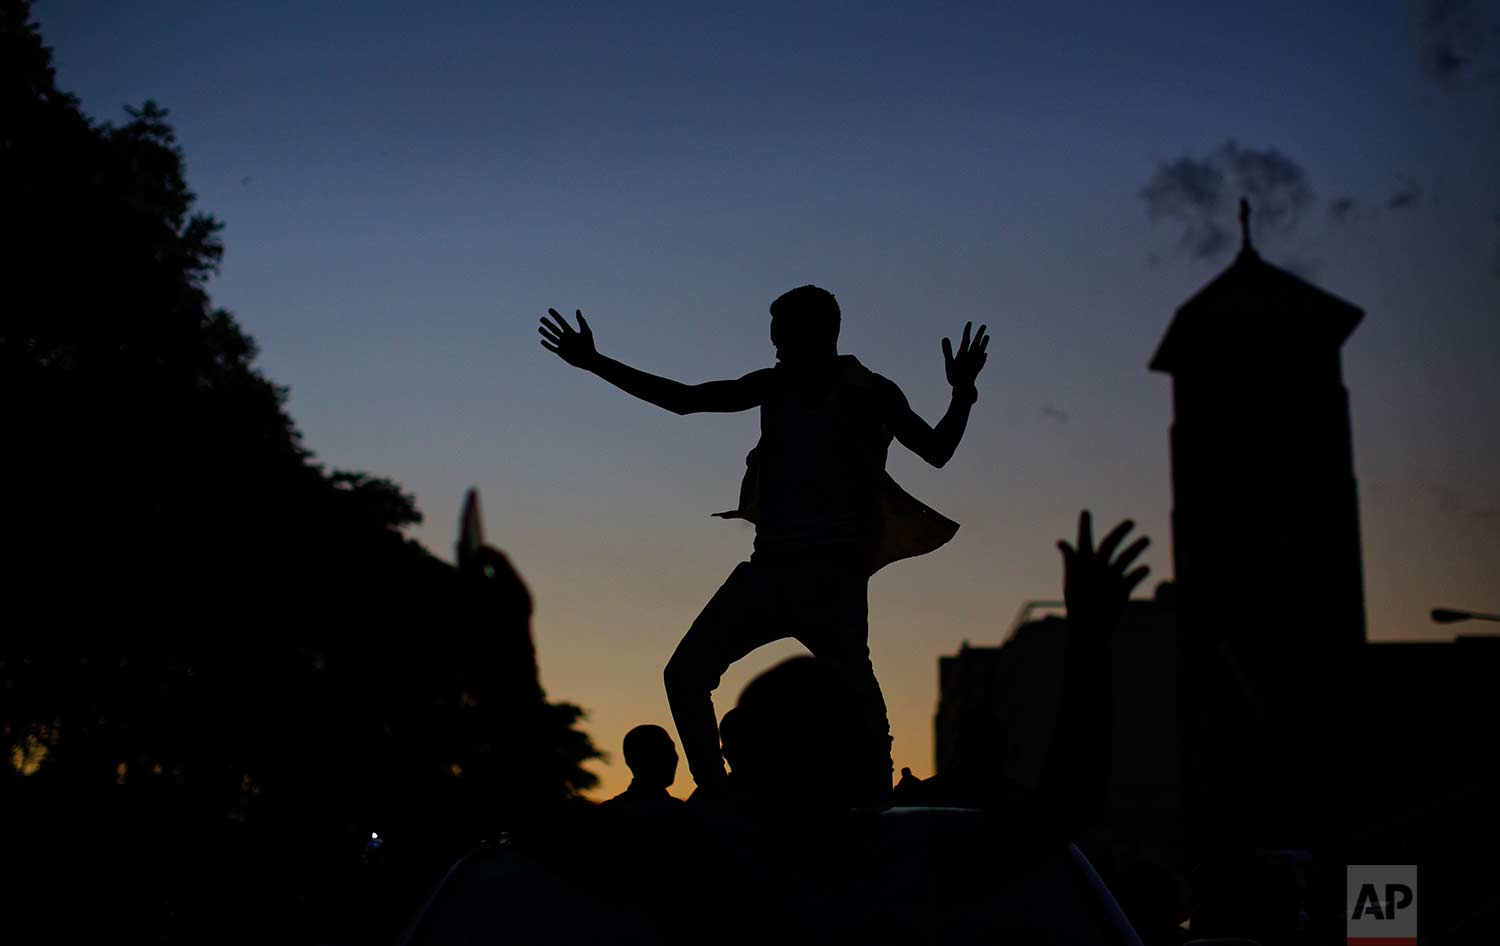 A Zimbabwean dances on the roof of a vehicle as he and others celebrate outside the parliament building immediately after hearing the news that President Robert Mugabe had resigned, in downtown Harare, Zimbabwe Tuesday, Nov. 21, 2017. (AP Photo/Ben Curtis)